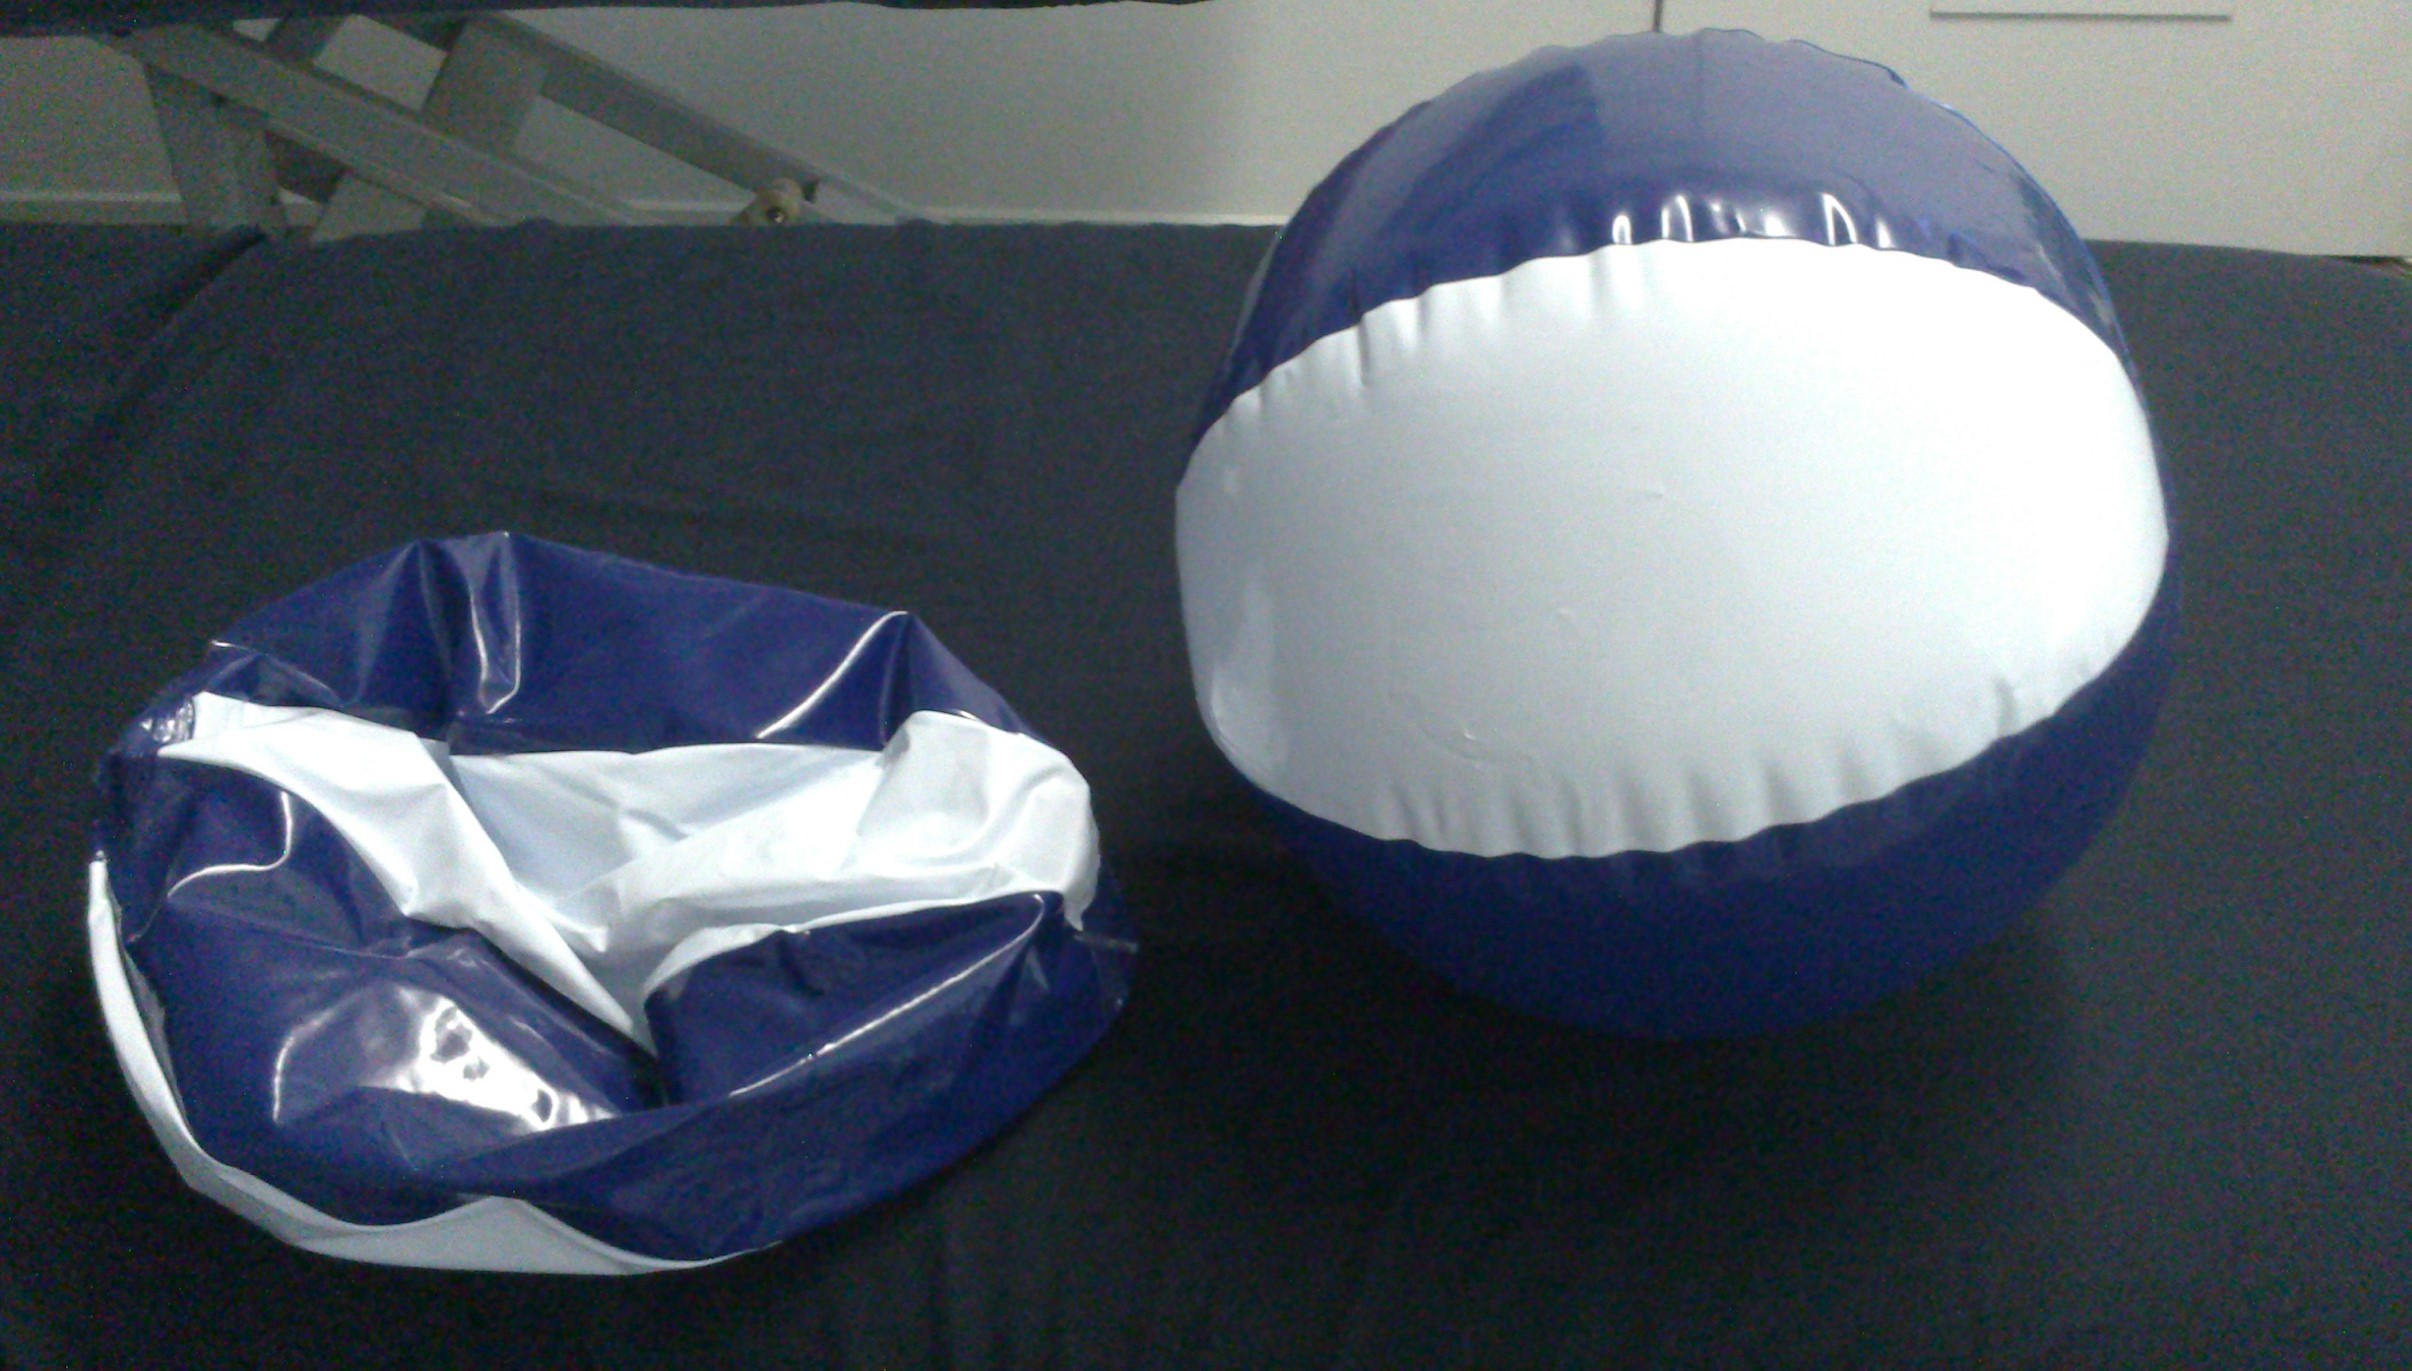 A ball Inflated with two breaths and a full size ball